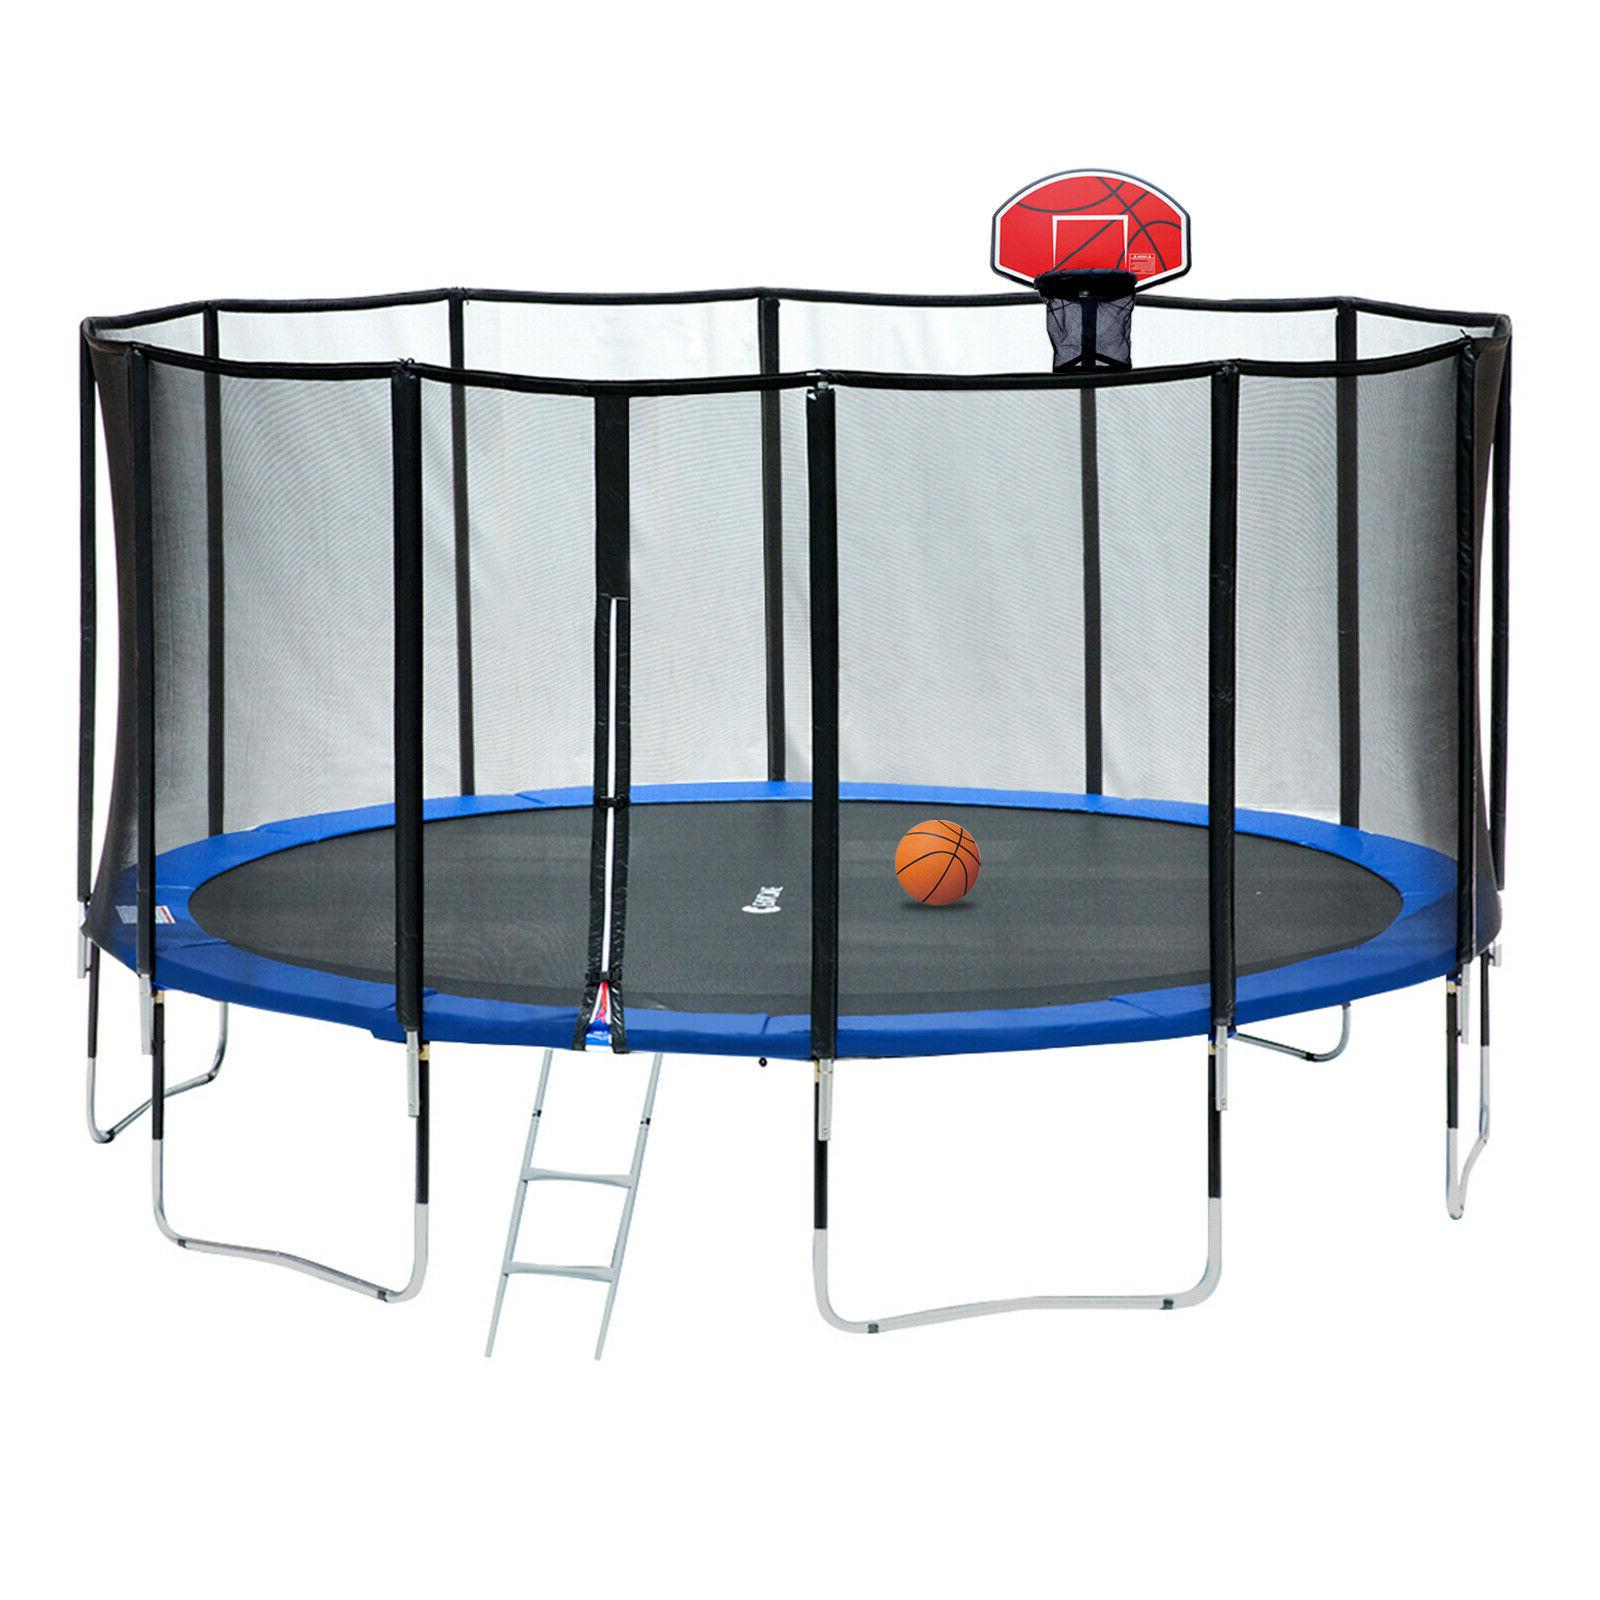 15 ft round trampoline with 400 lbs